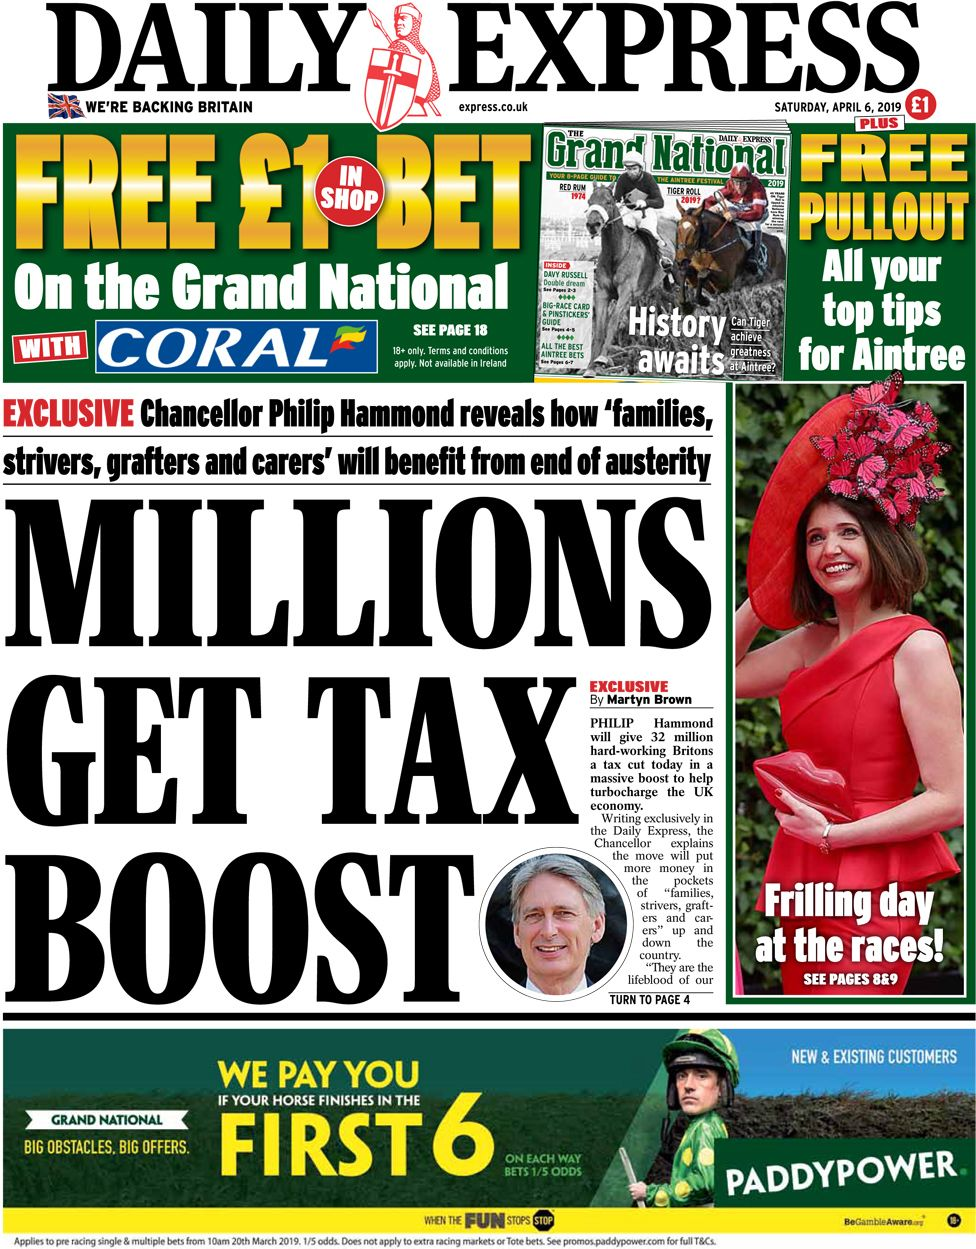 Daily Express front page, 6/4/19